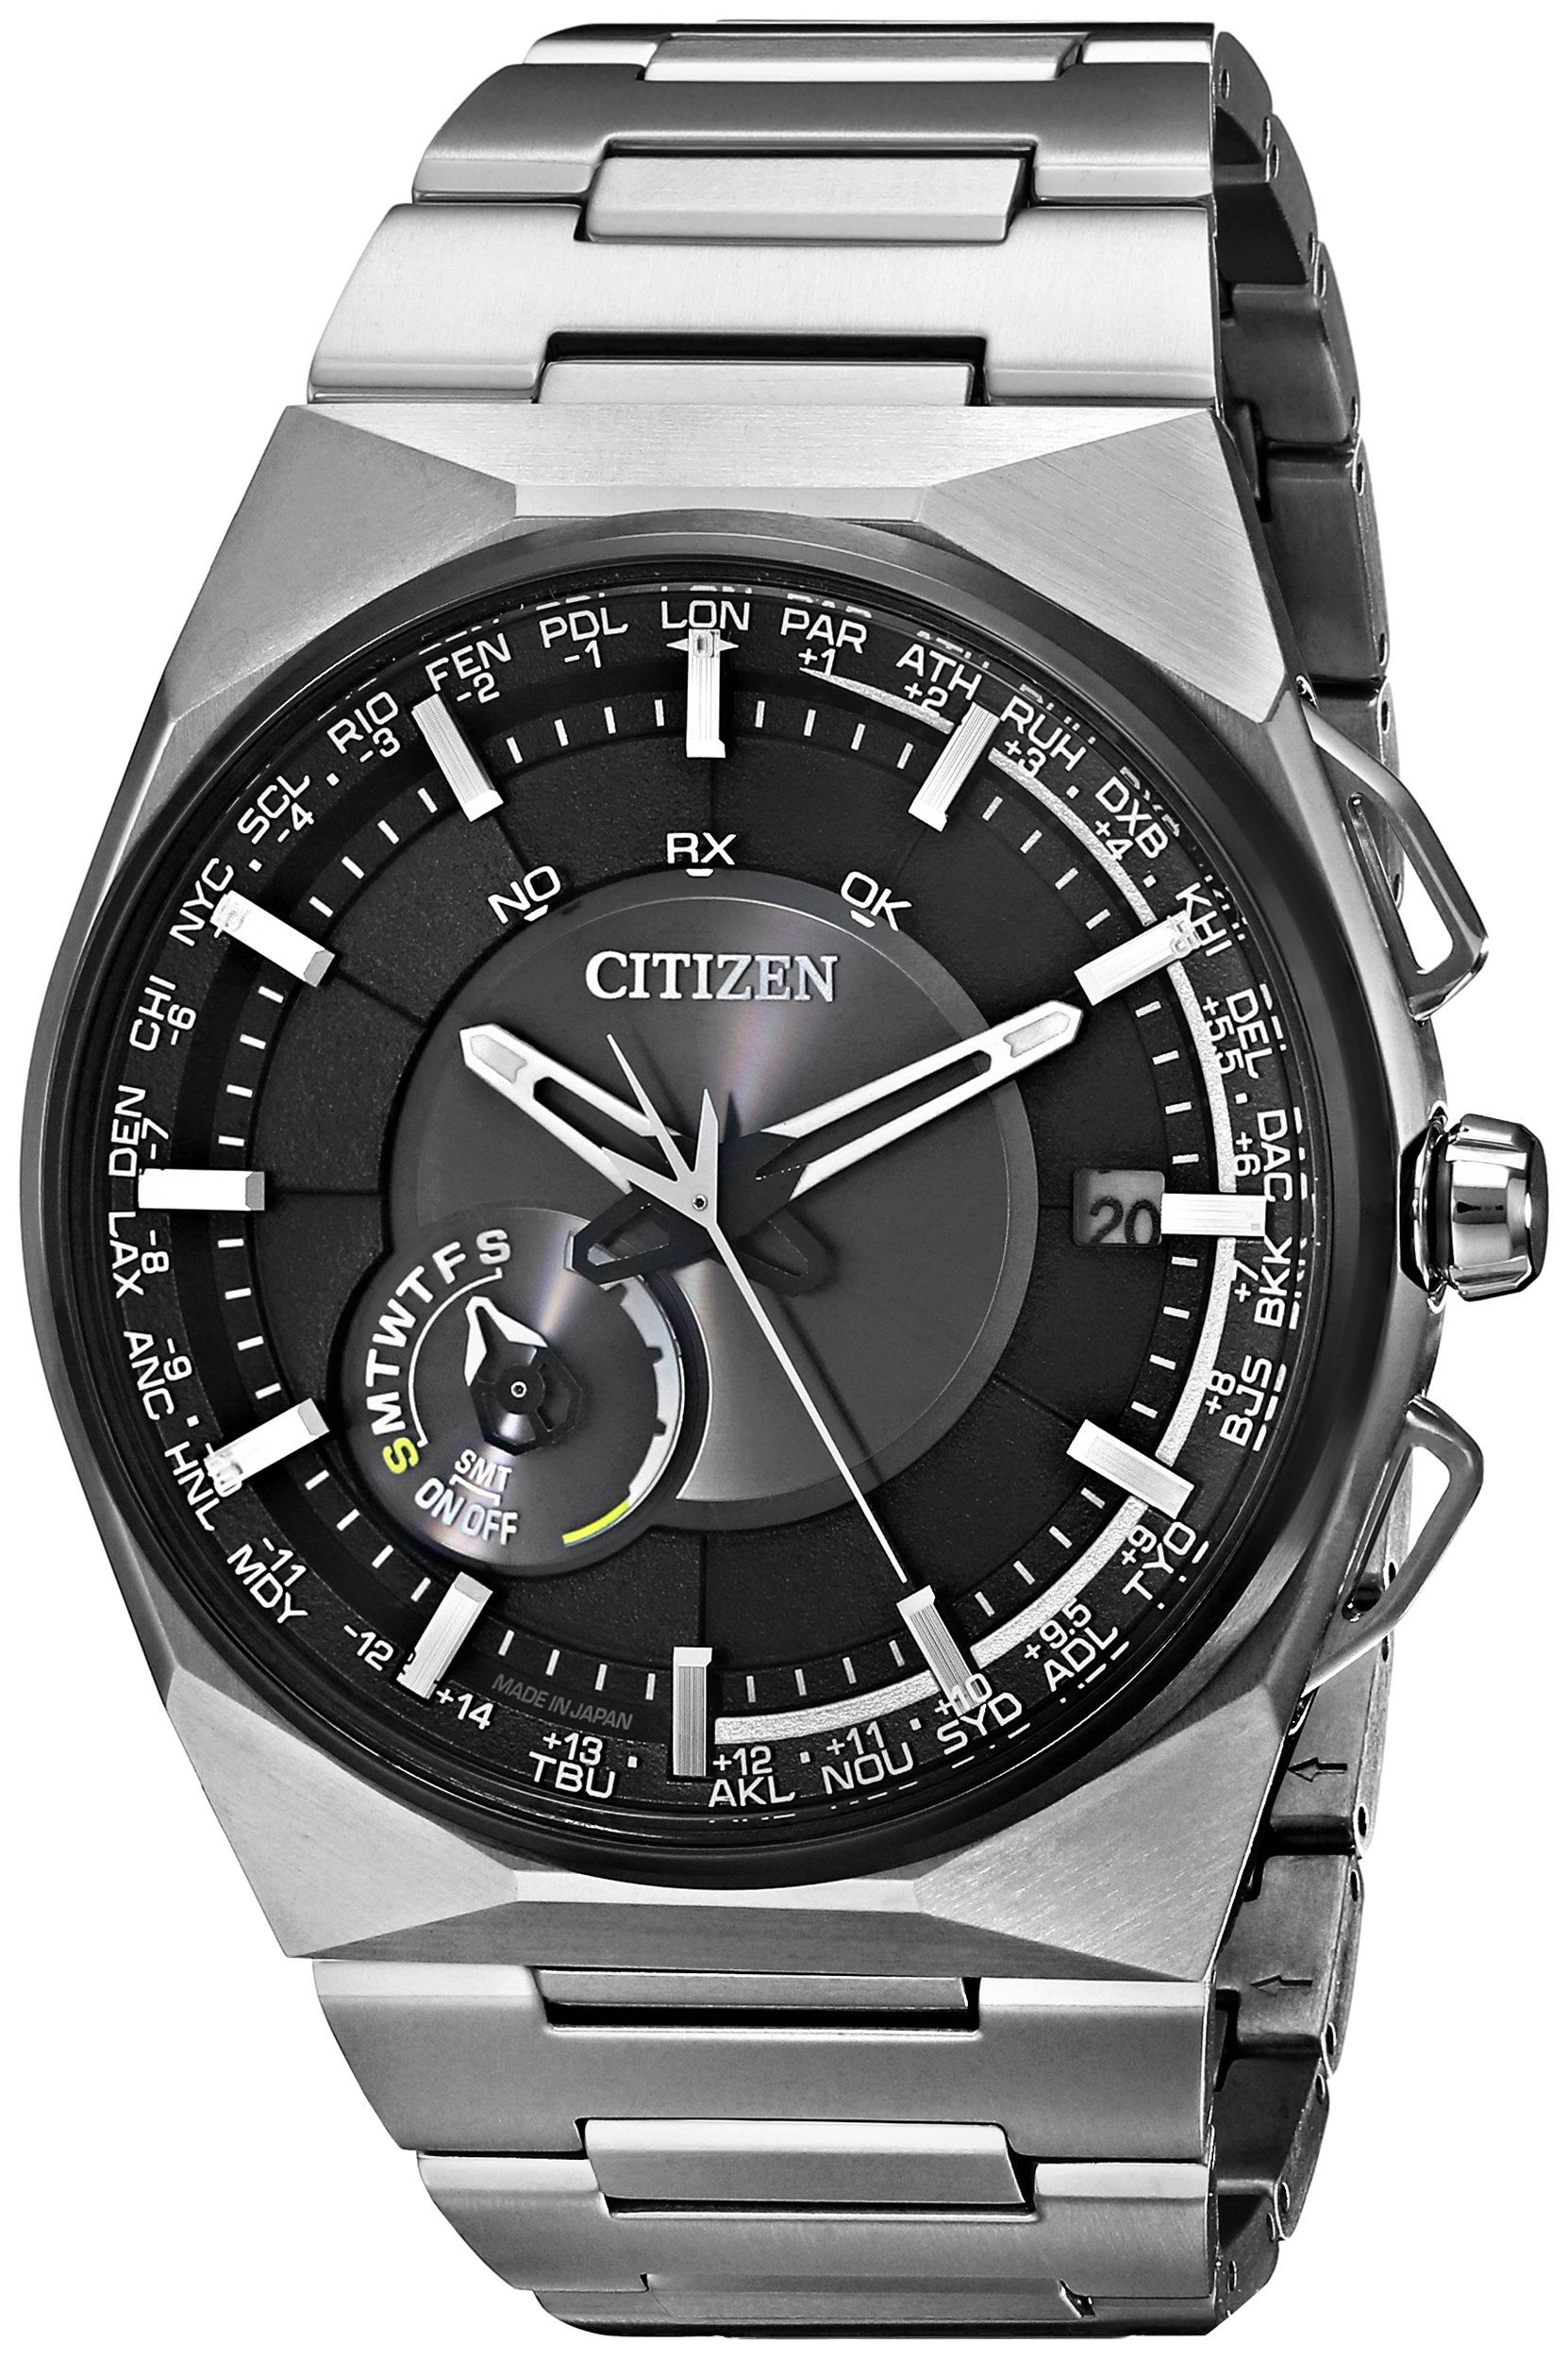 Citizen Men's Eco-Drive Satellite Wave F100 Titanium GPS Japanese Quartz Watch with Black Dial Analog Display and Stainless Steel Band (CC2006-61E)